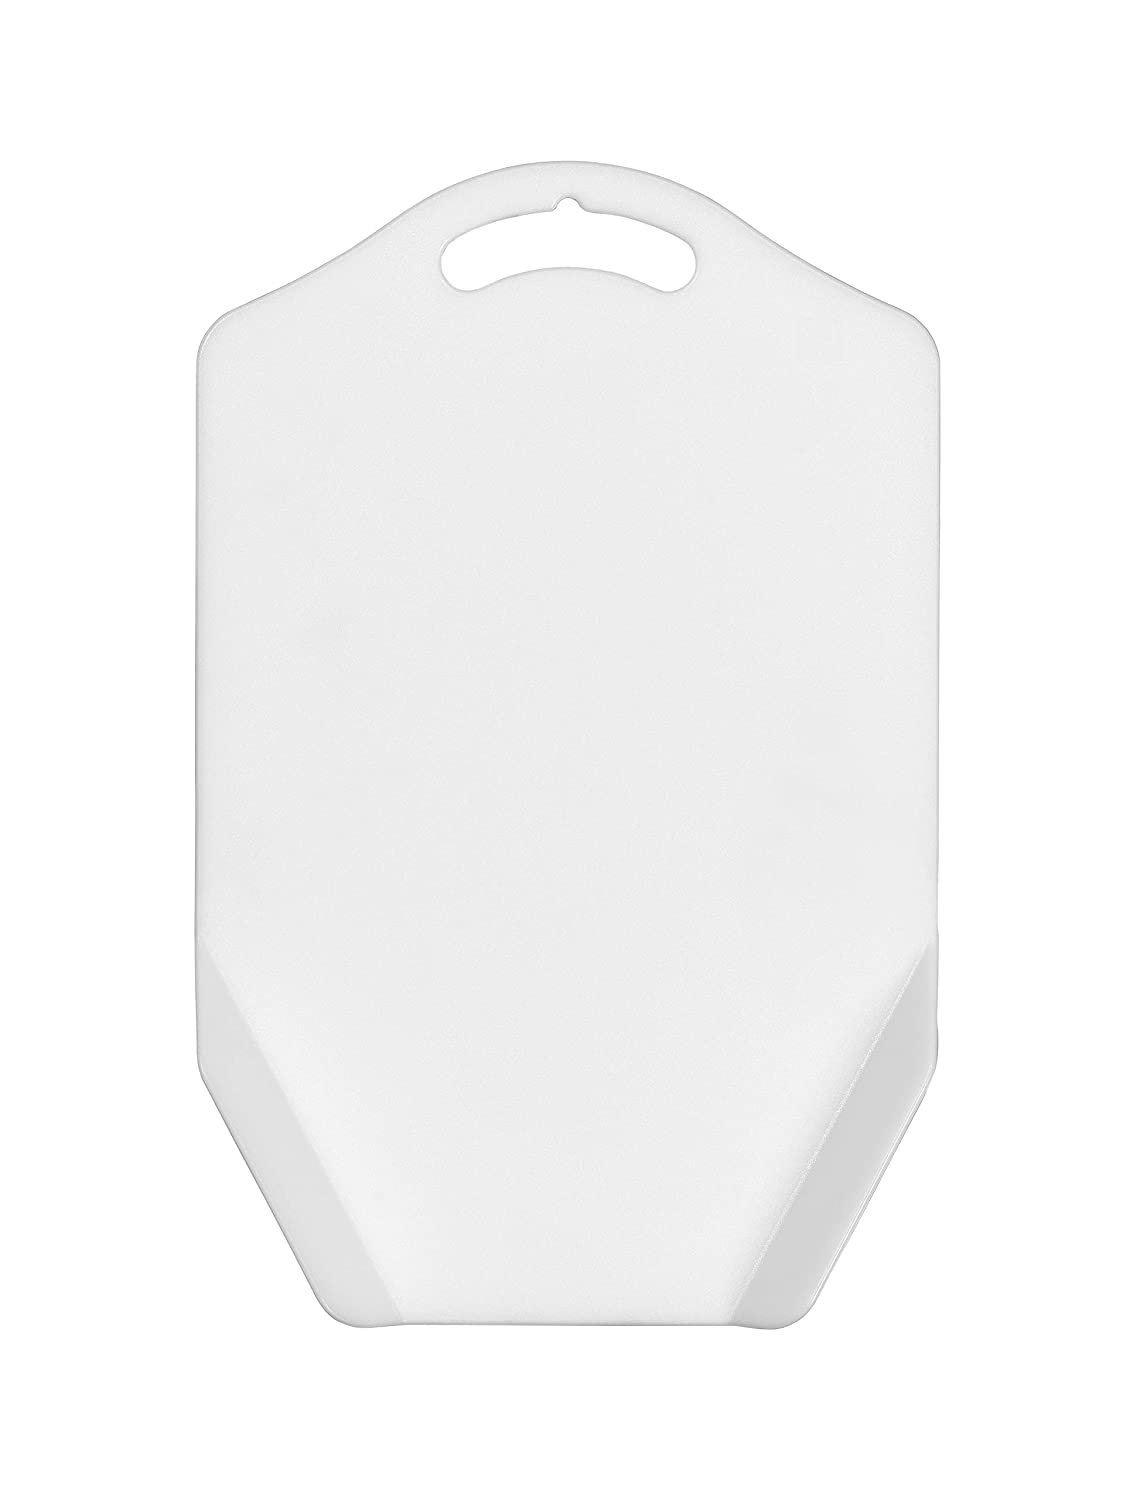 Chef Aid Funnel Chopping Board in White George East Housewares 10E21061